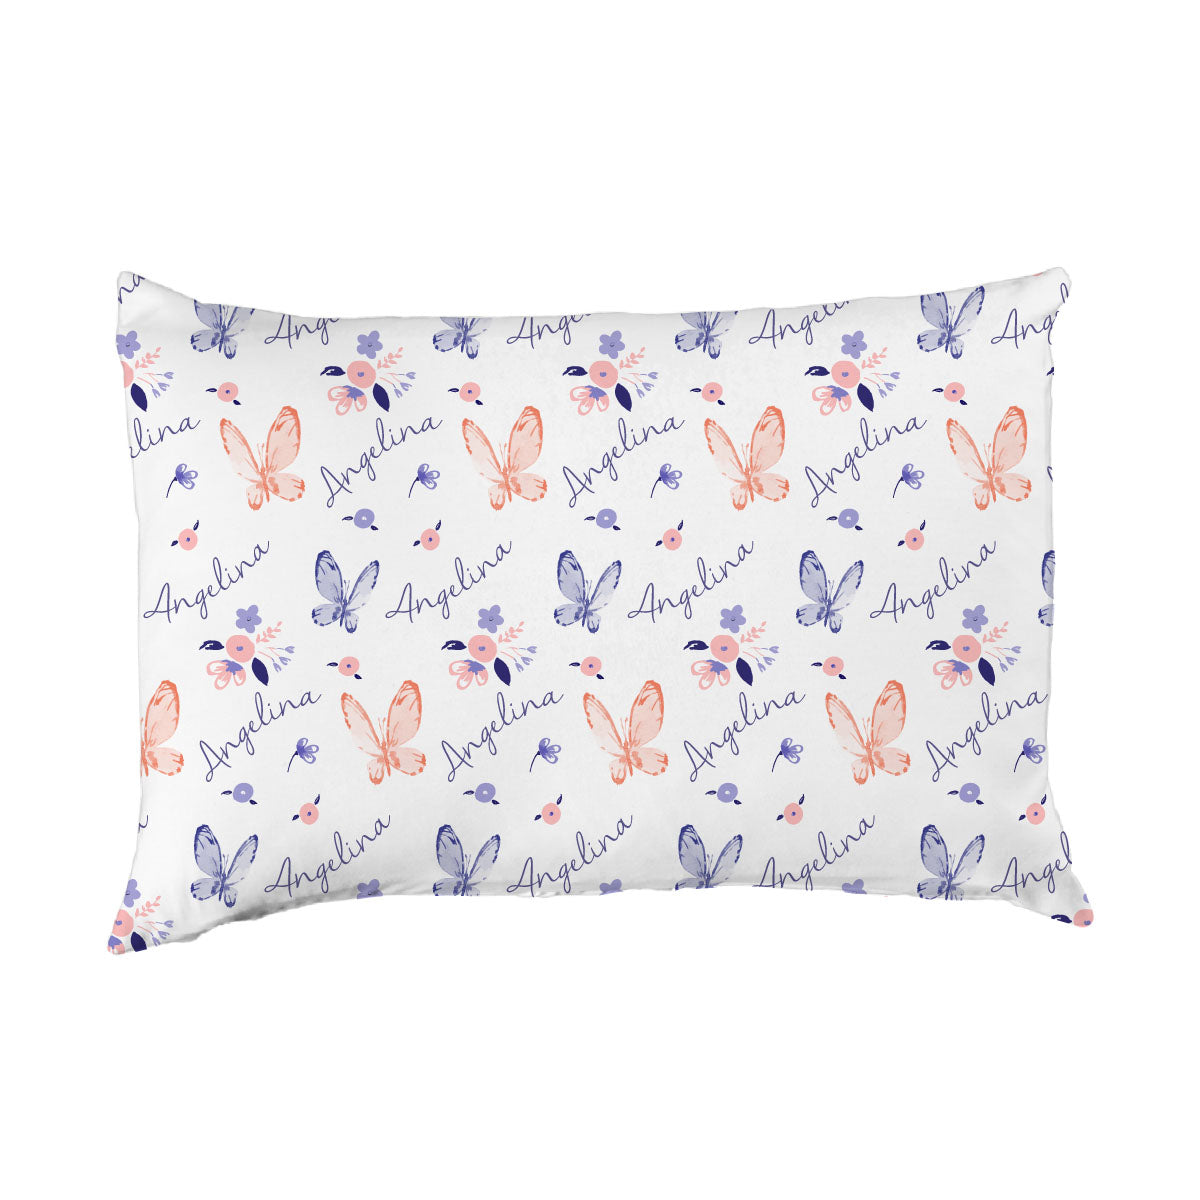 Angelina's Summer Butterfly | Big Kid Pillow Case